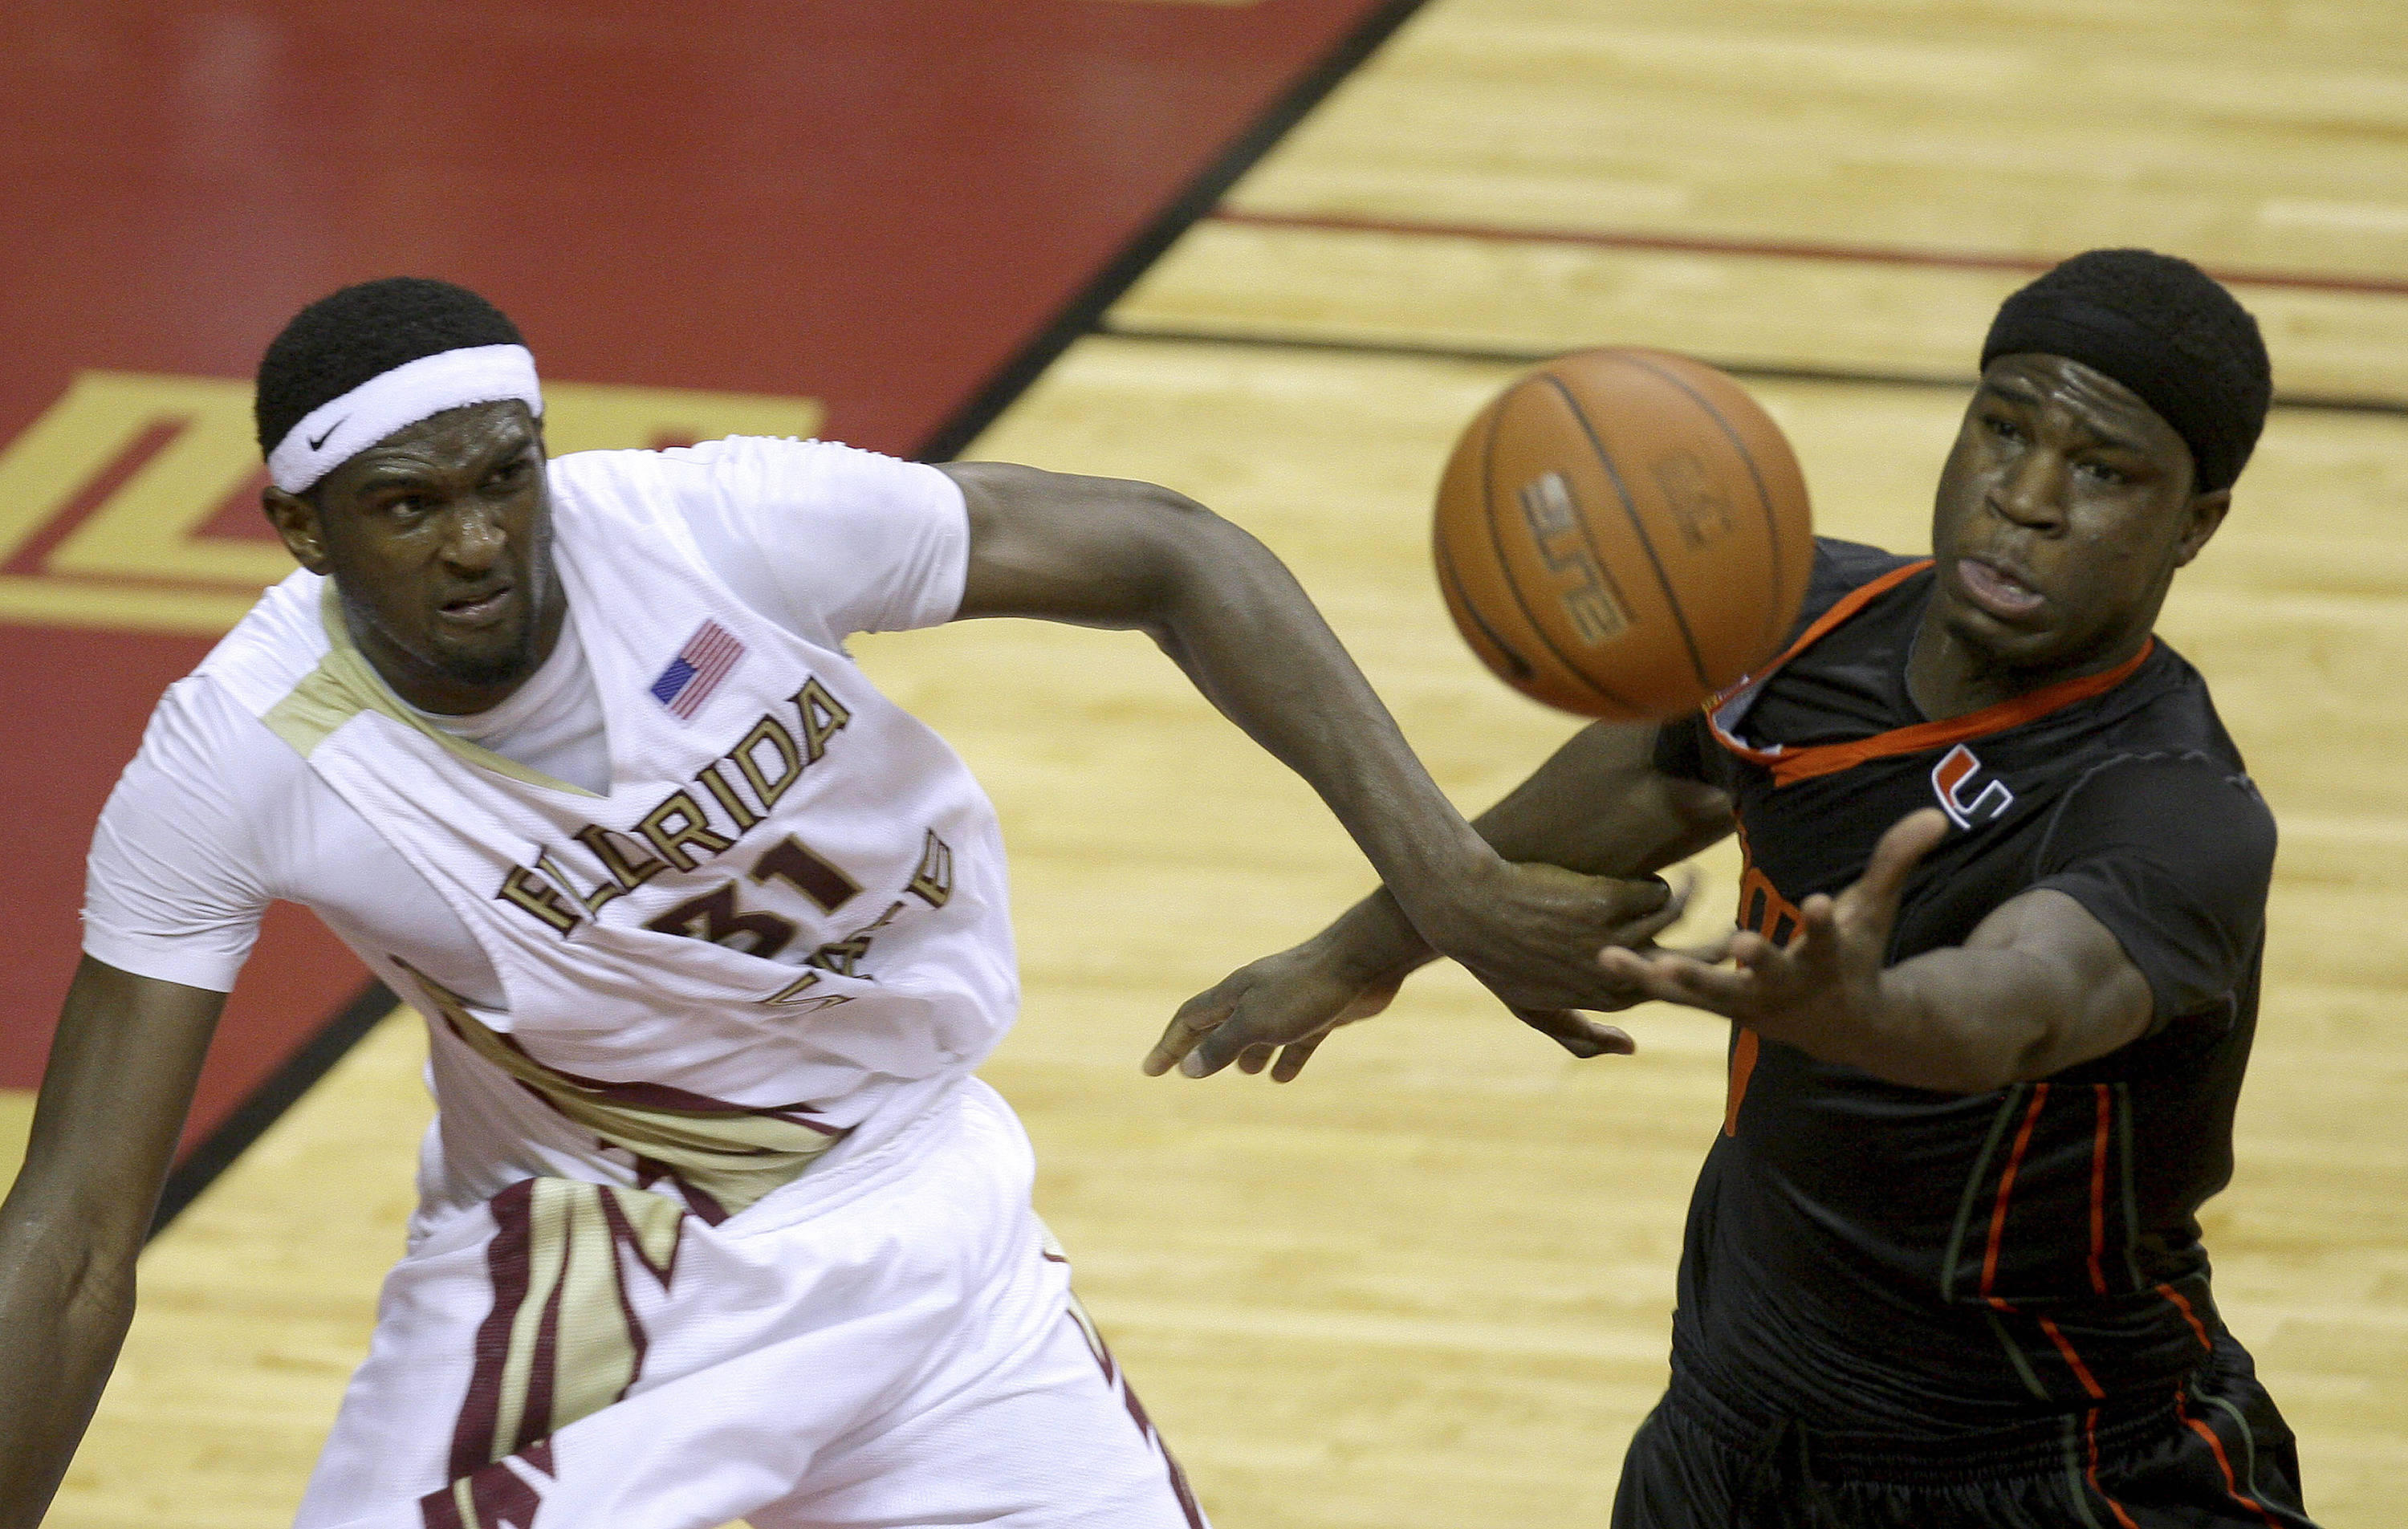 Miami's Adrian Thomas, right, pulls down a second-half rebound against Florida State's Chris Singleton during an NCAA college basketball game, Saturday, Feb. 6, 2010, in Tallahassee, Fla. Florida State won 71-65. (AP Photo/Phil Coale)